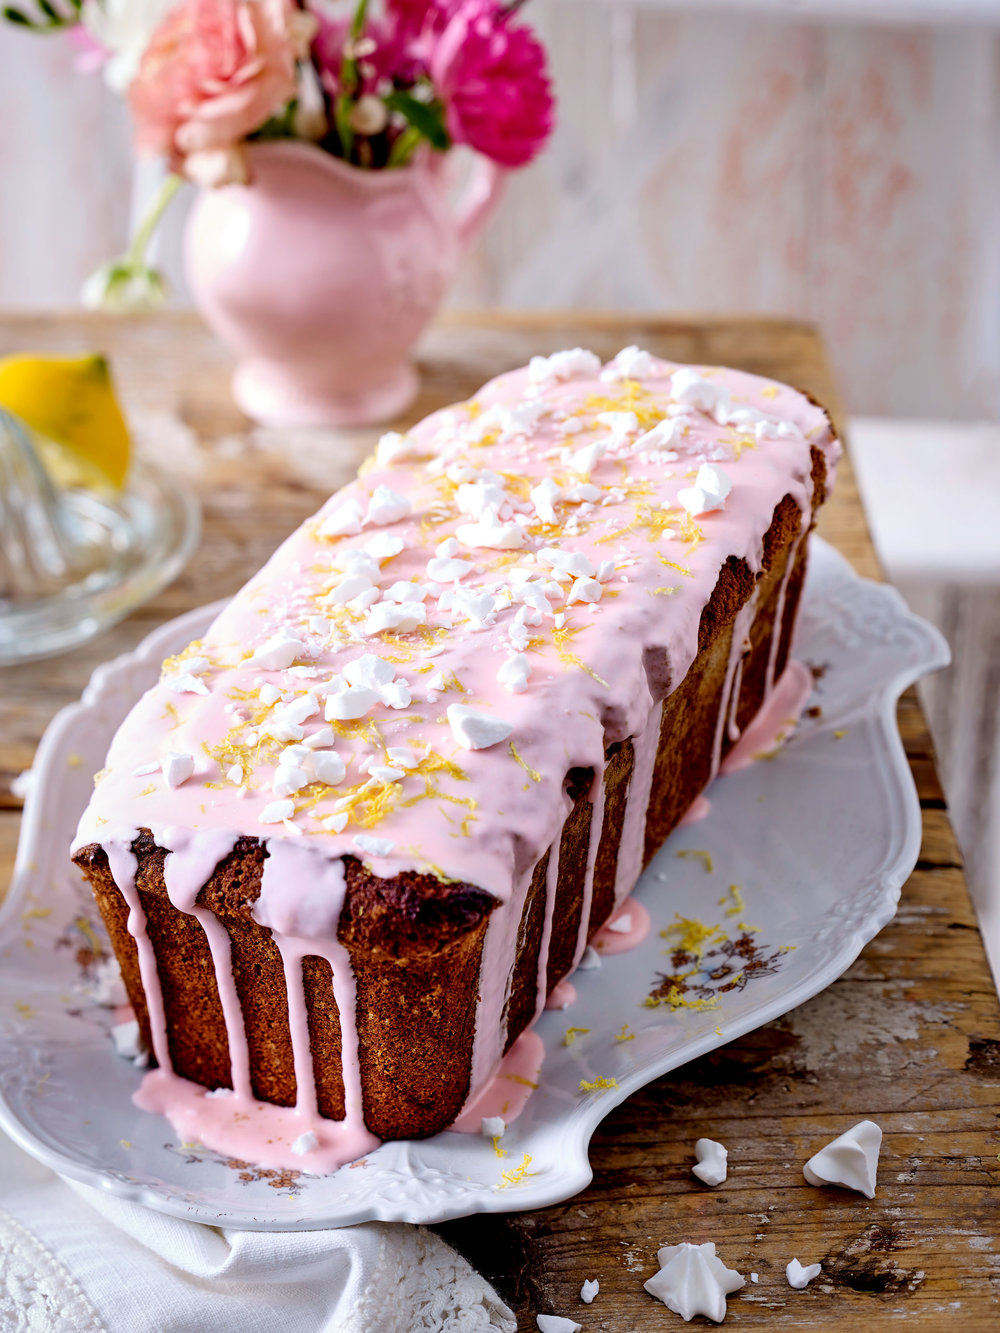 Drizzled with lemon flavour icing and scattered with crushed lemon sugar rosettes, this is a gorgeous teatime treat.